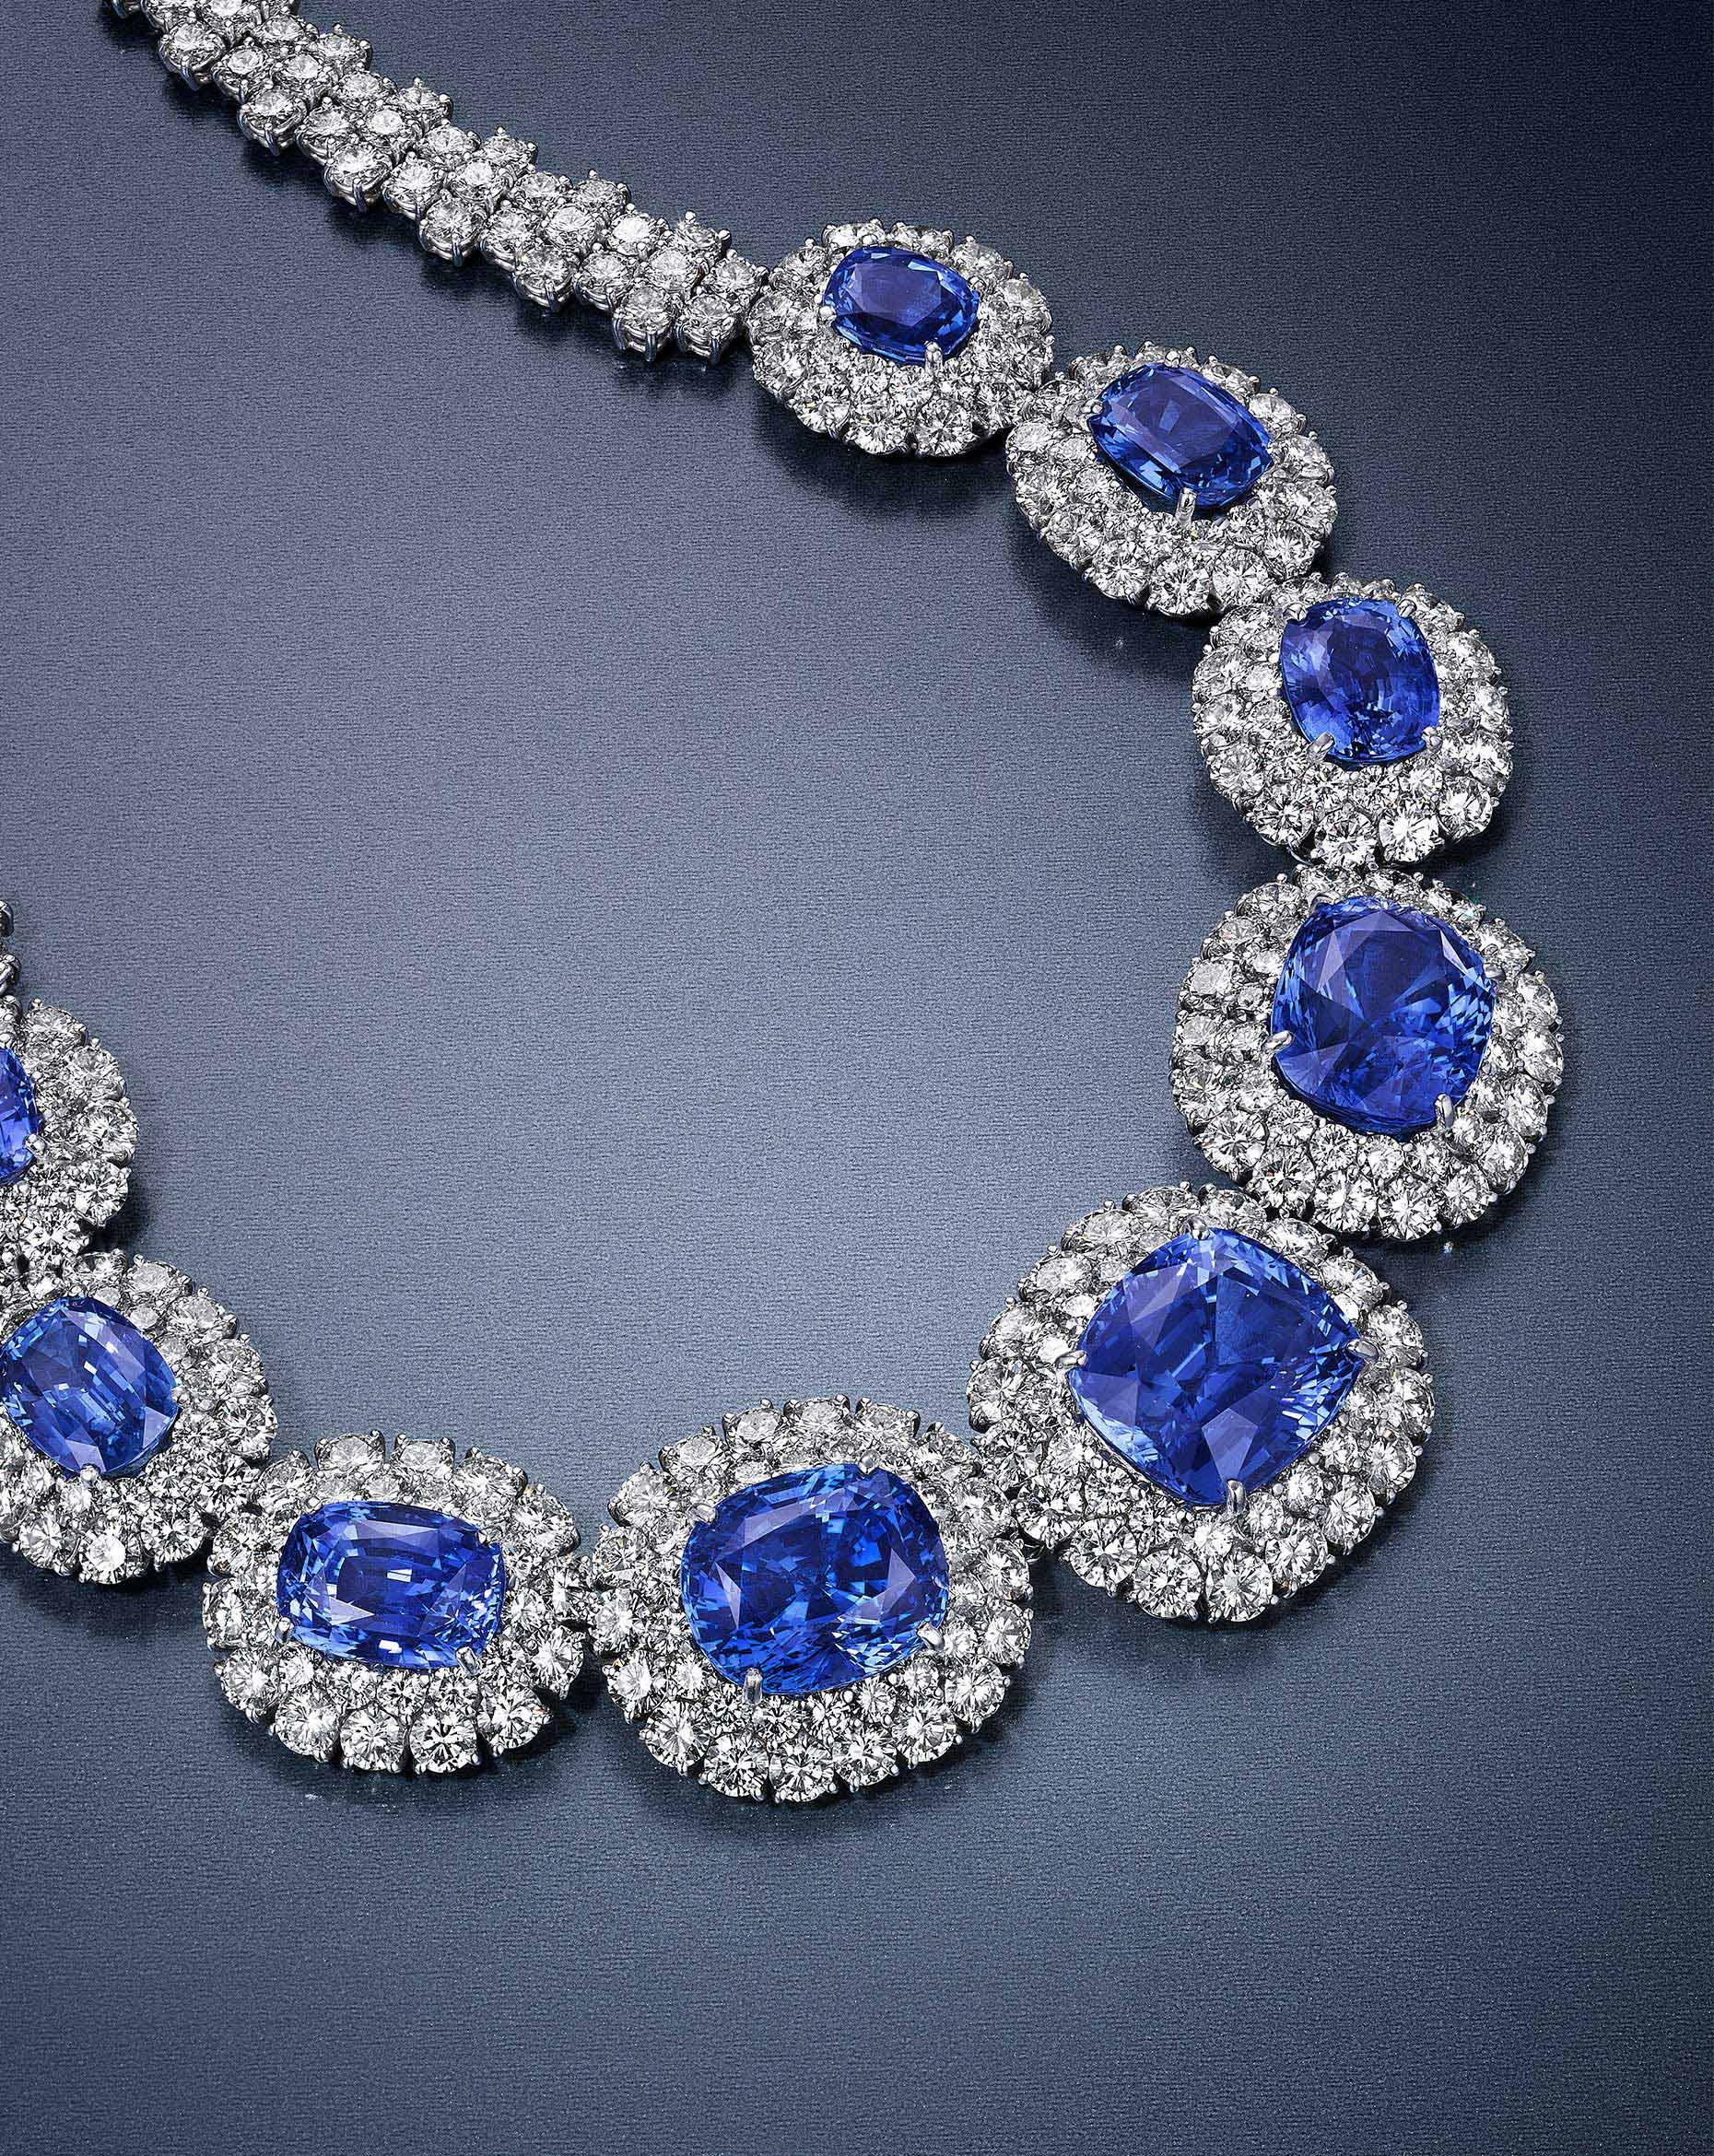 SapphireDiamondNecklace